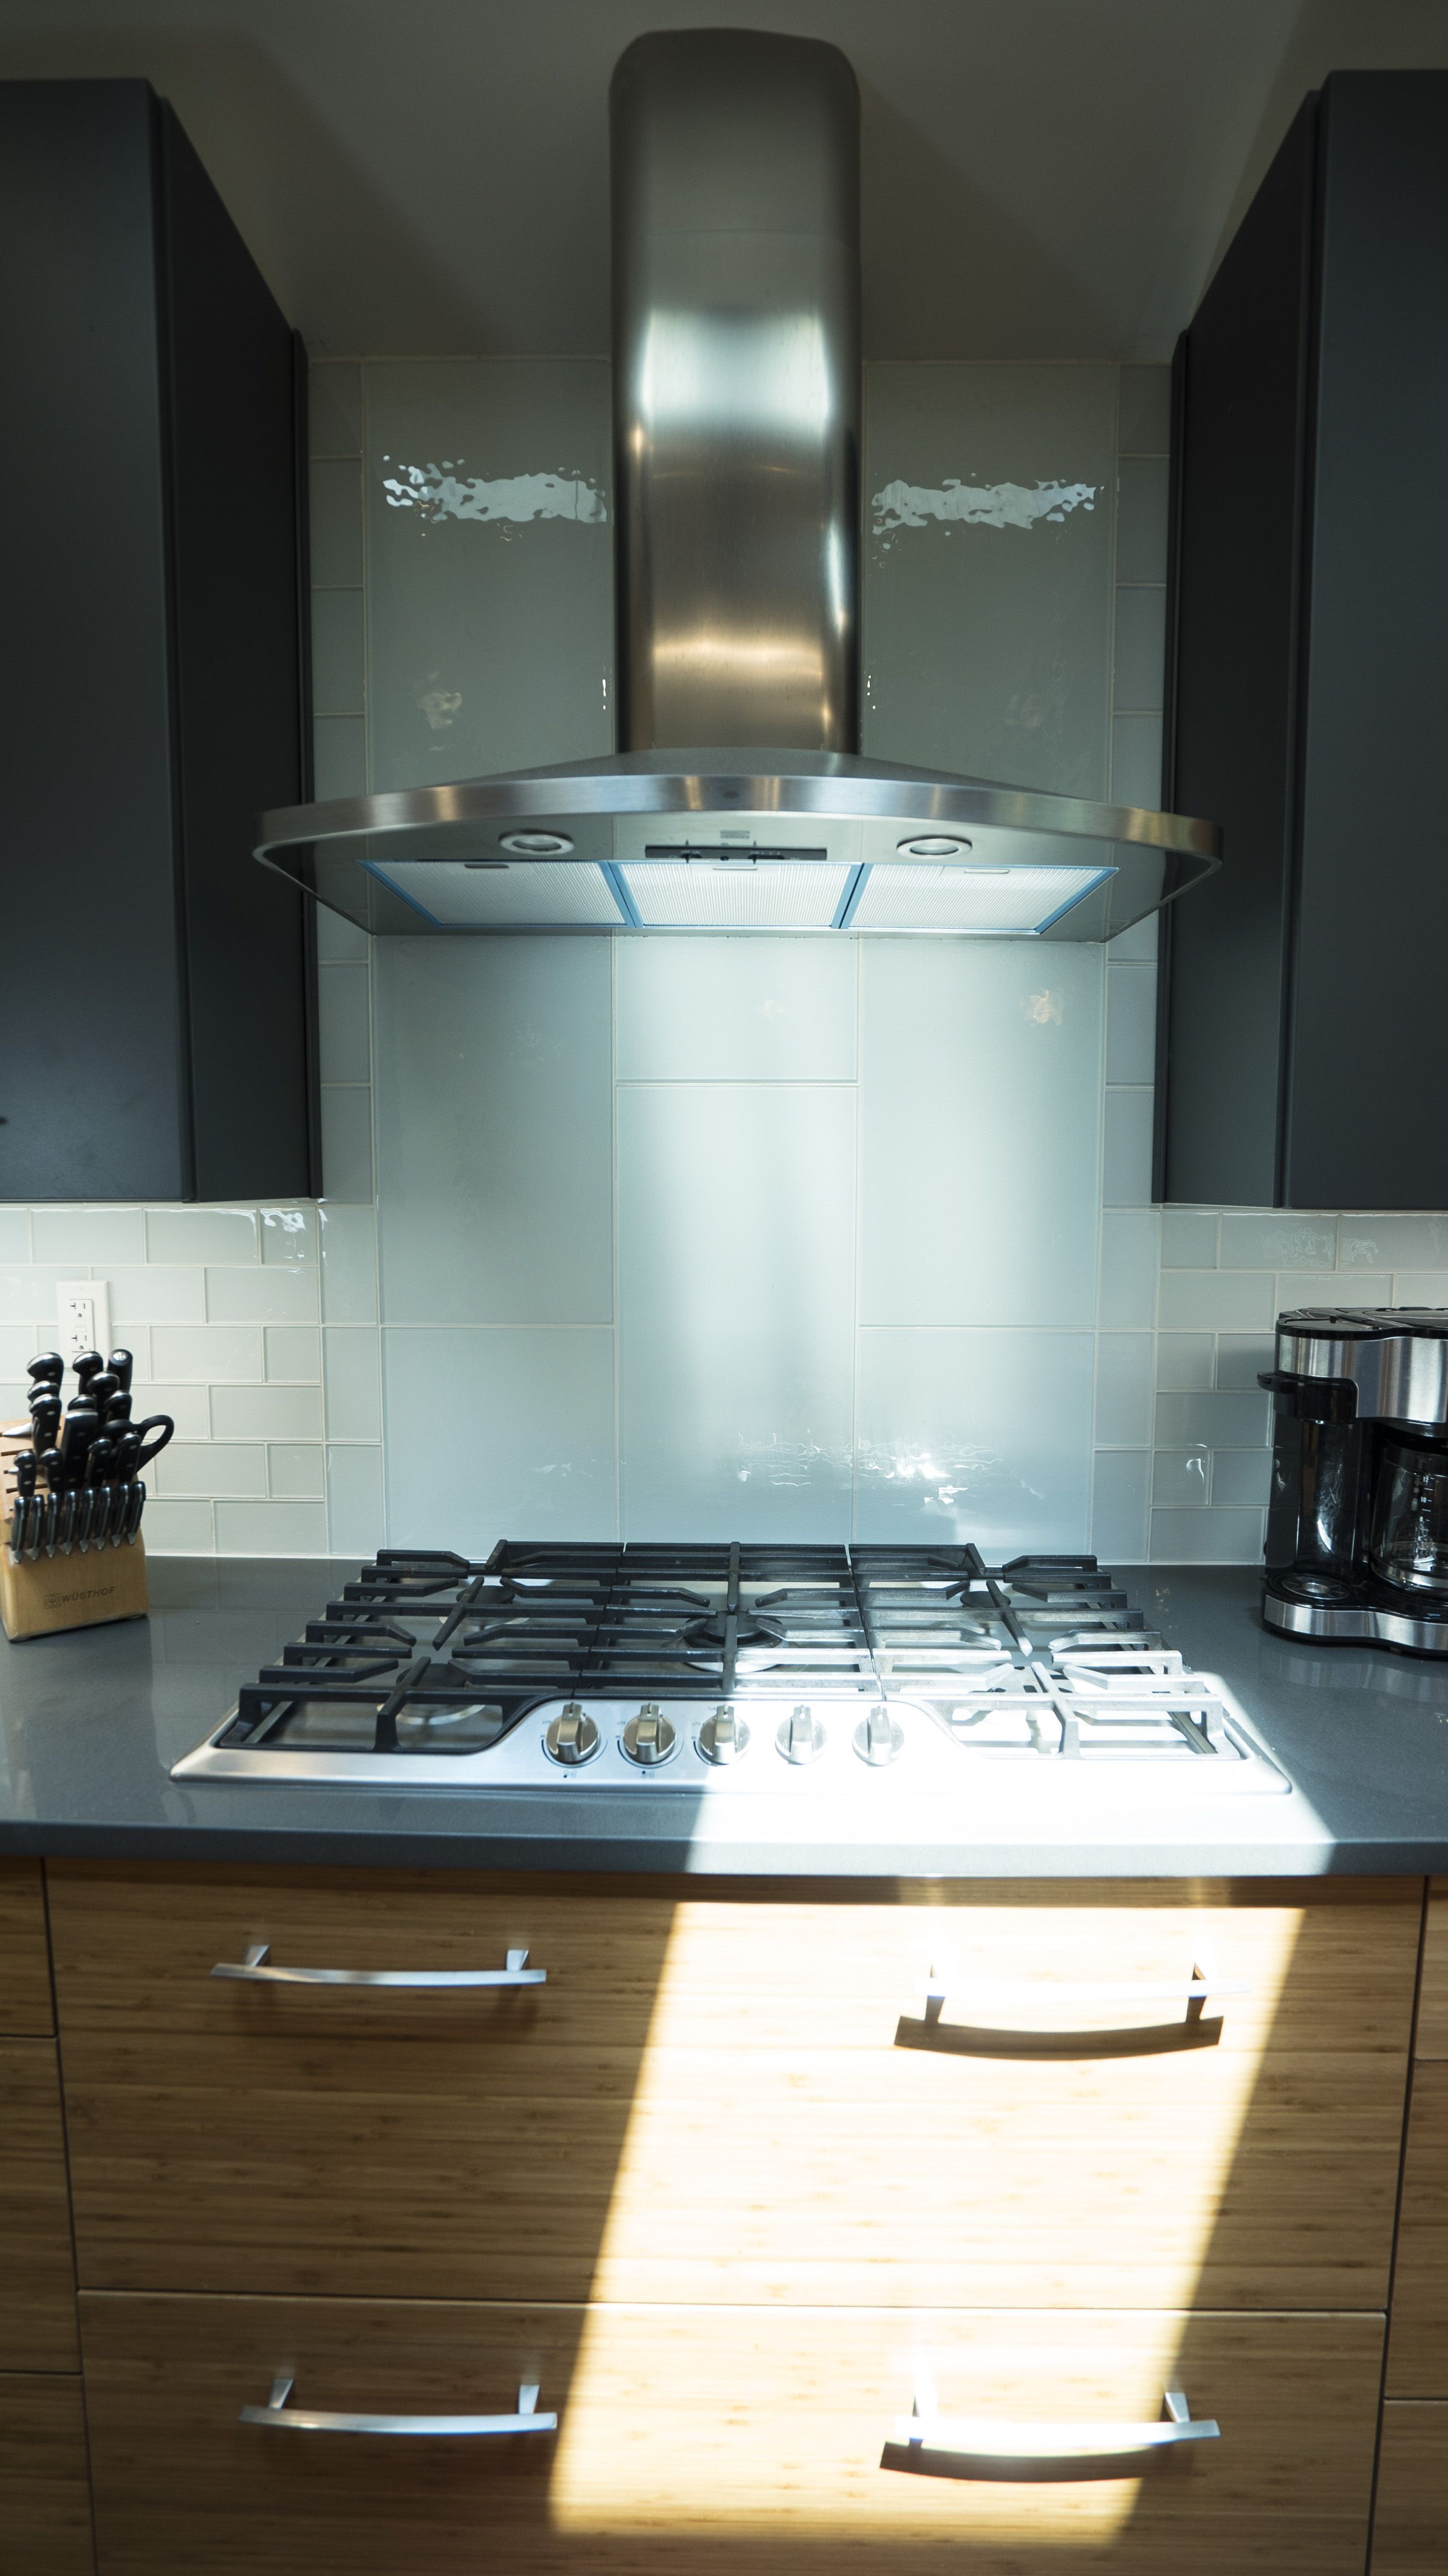 The Regular Subway Tile Changes Size And Orientation By The Cooktop  #kitchen #remodel #homedesign #homedecor #design #interiordesign #cabinets  #door #style ...